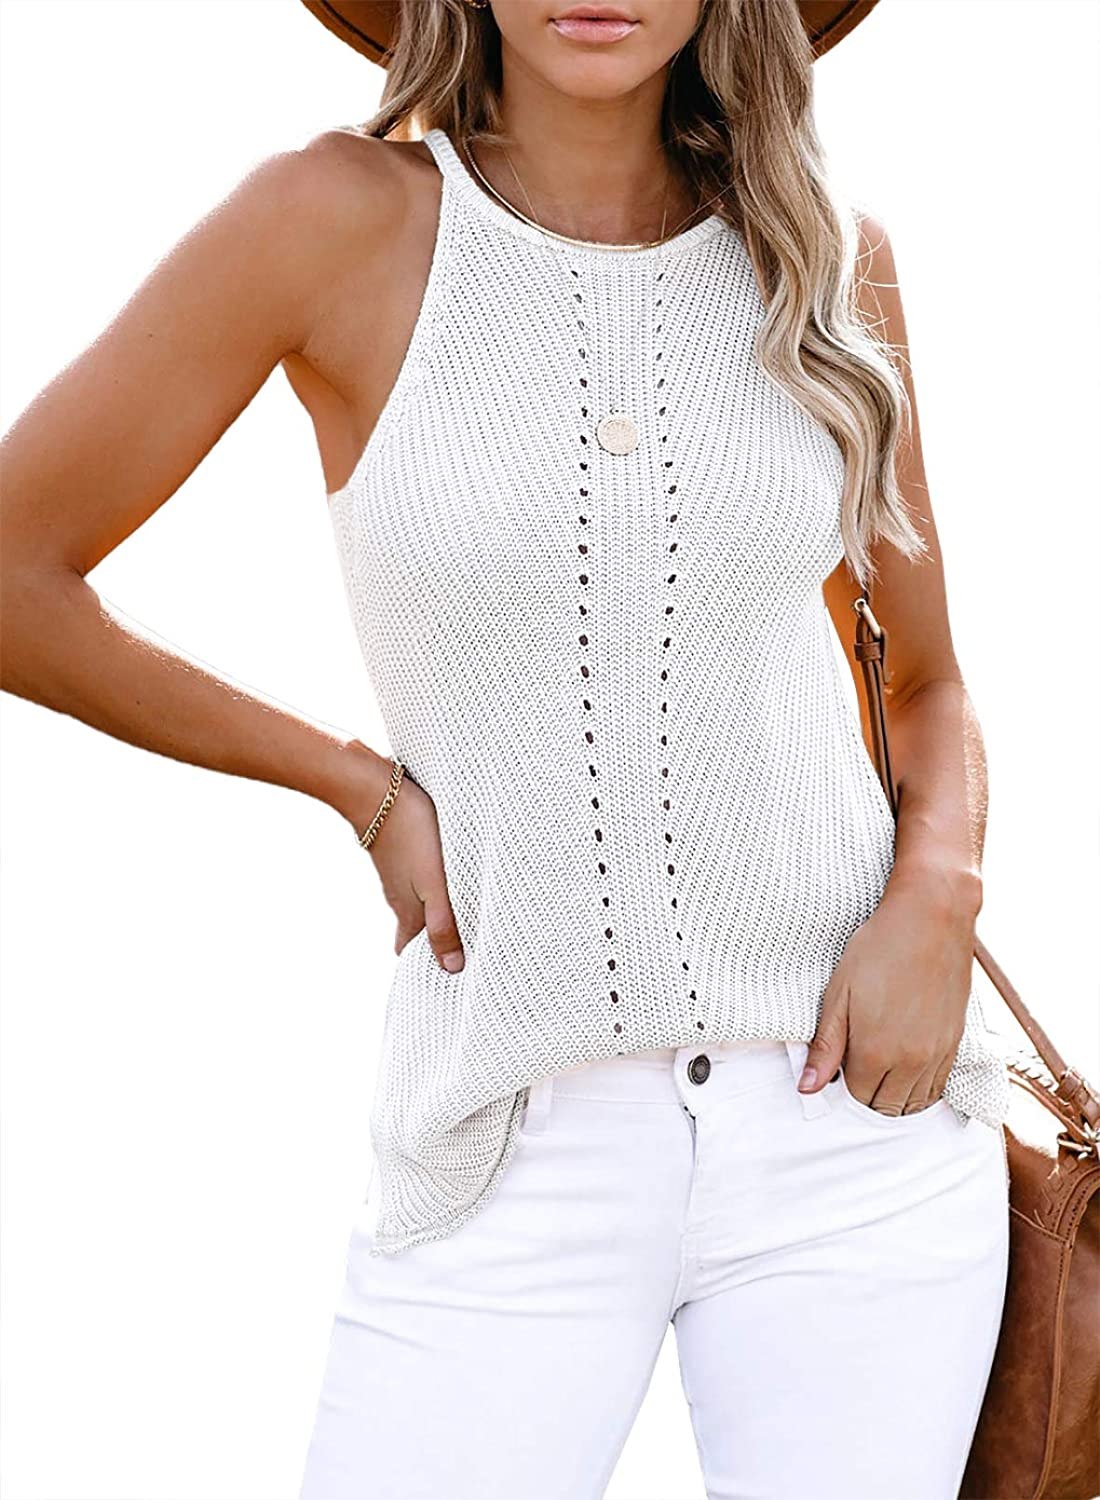 Zecilbo Womens Fashion Casual Tanks Summer Sexy V Neck Sleeveless Shirts Color Block Blouses Loose Cute Camis Tops